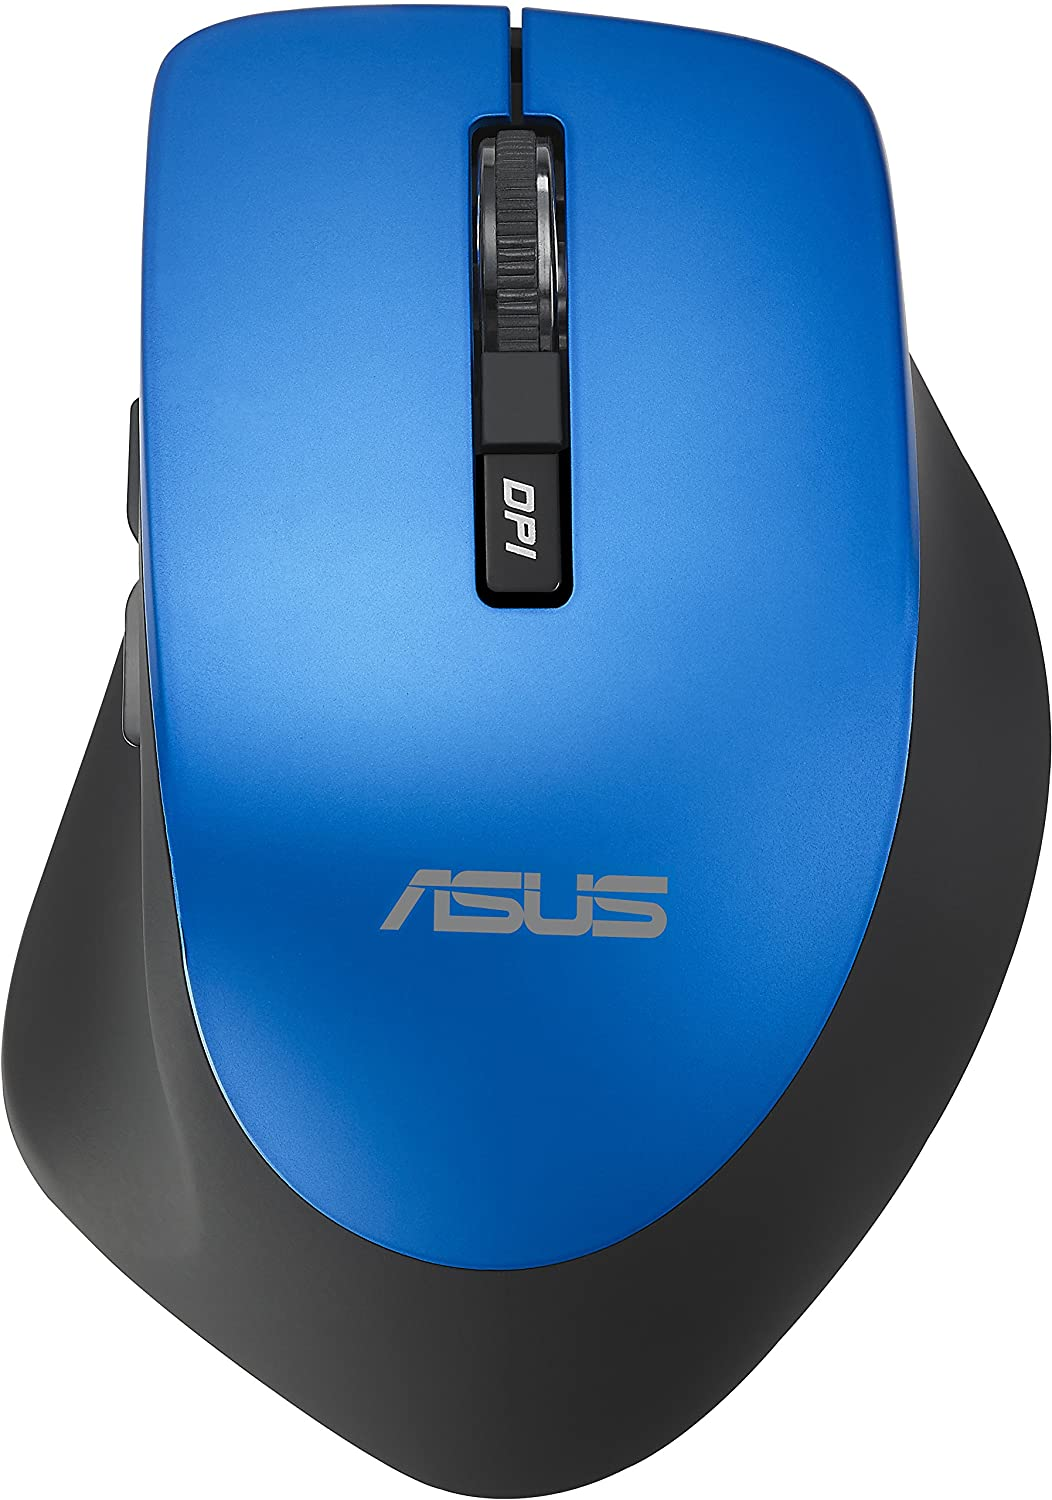 ASUS WIRELESS MOUSE AM1L WINDOWS 8 X64 DRIVER DOWNLOAD